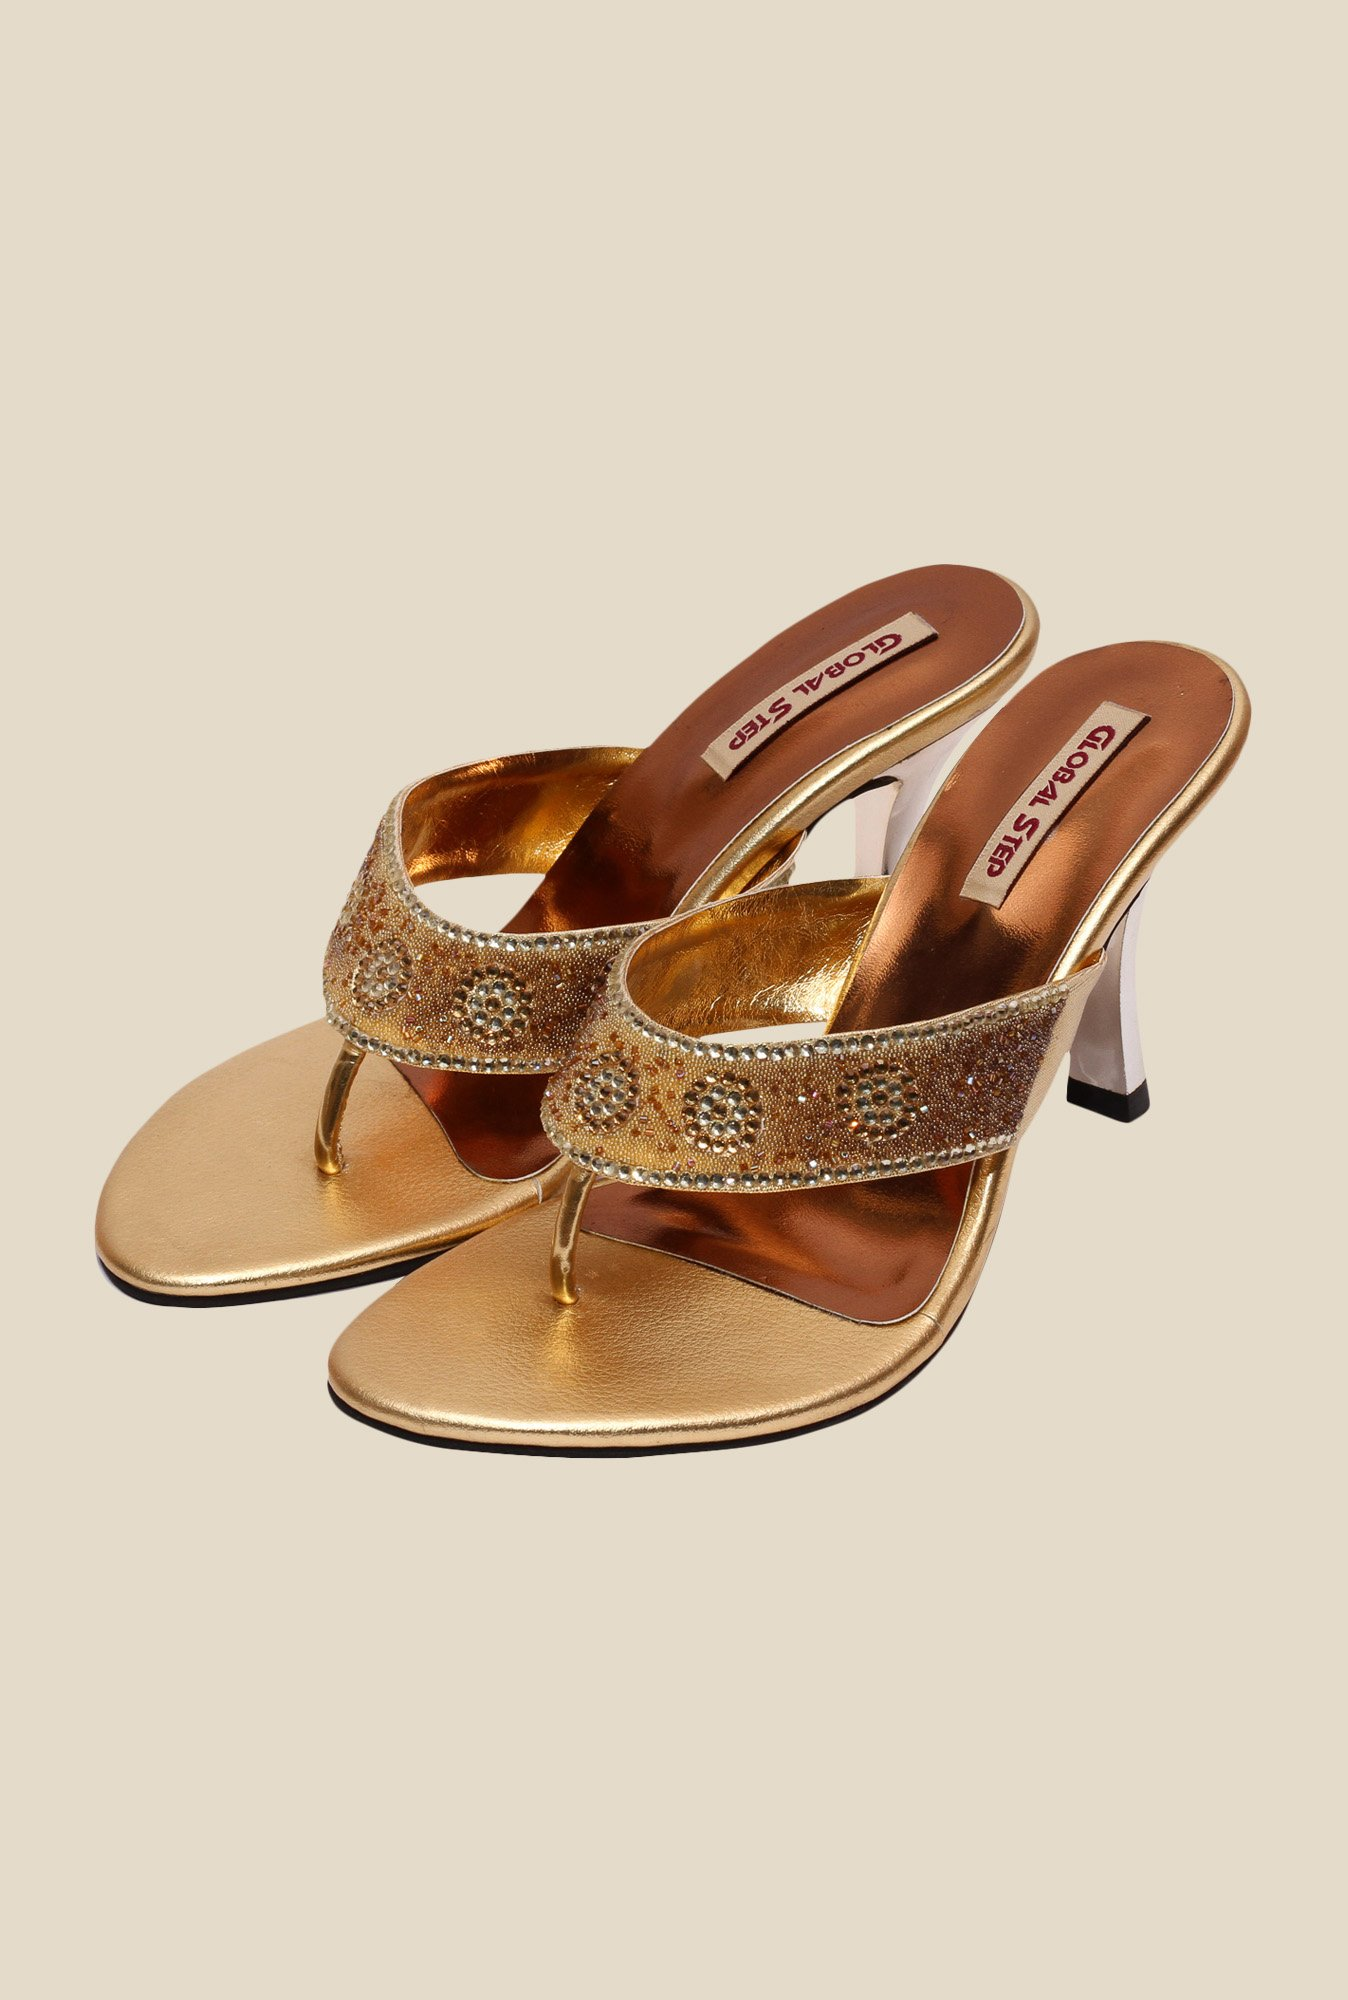 Global Step Golden Spool Heeled Thong Sandals